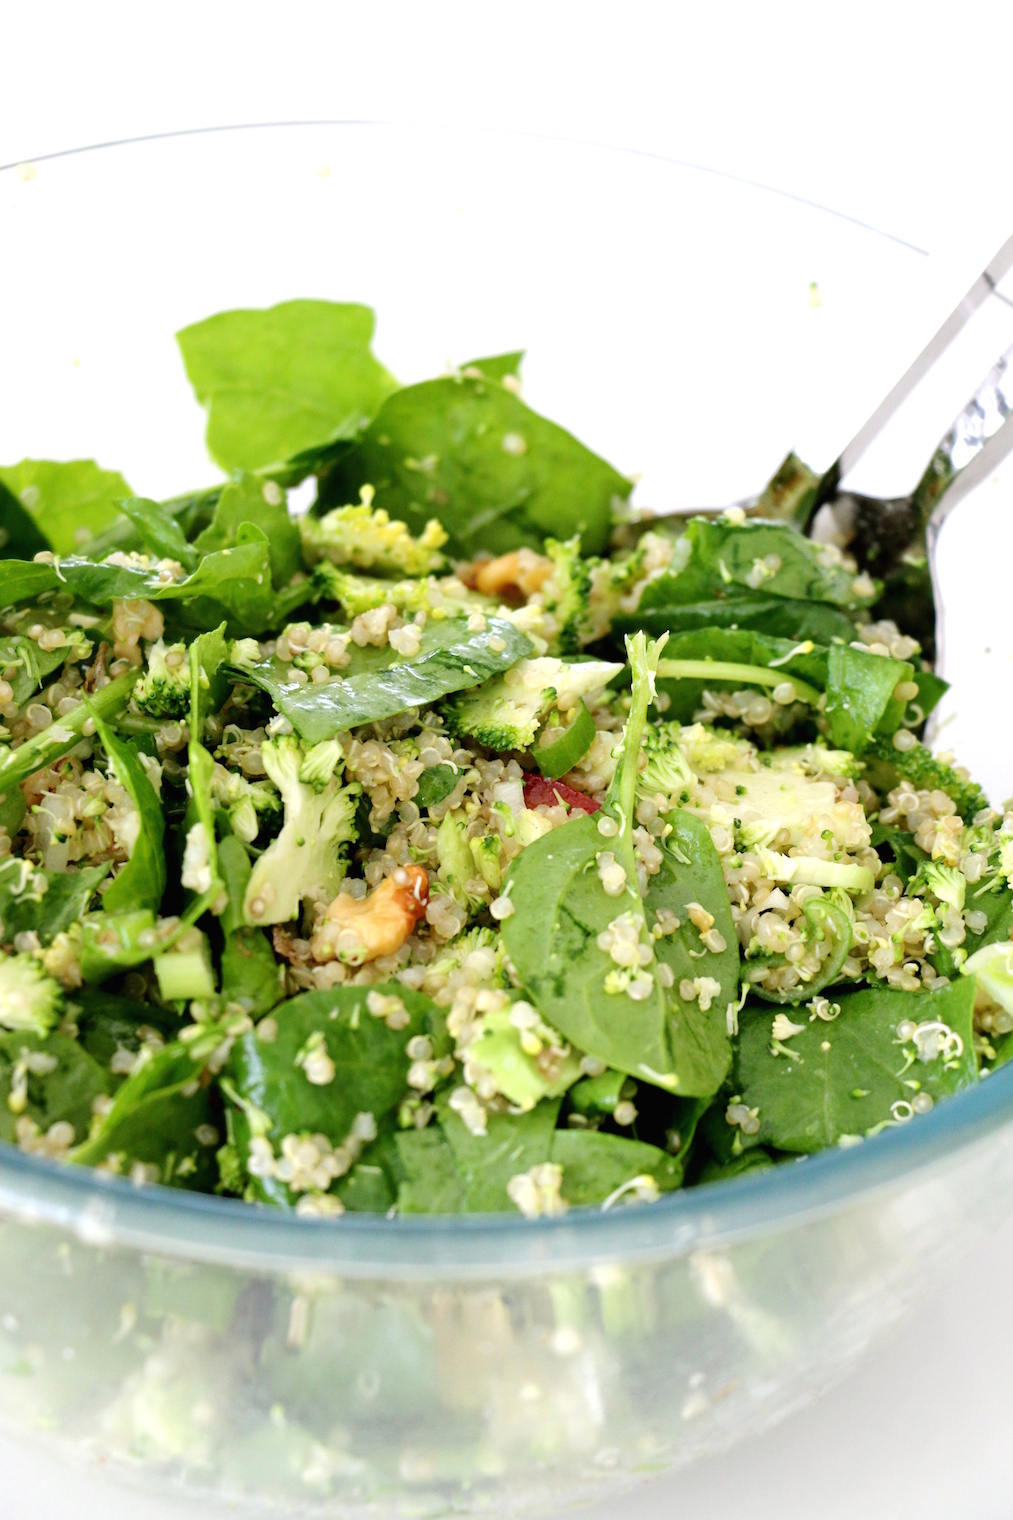 shredded-broccoli-and-spinach-quinoa-salad3